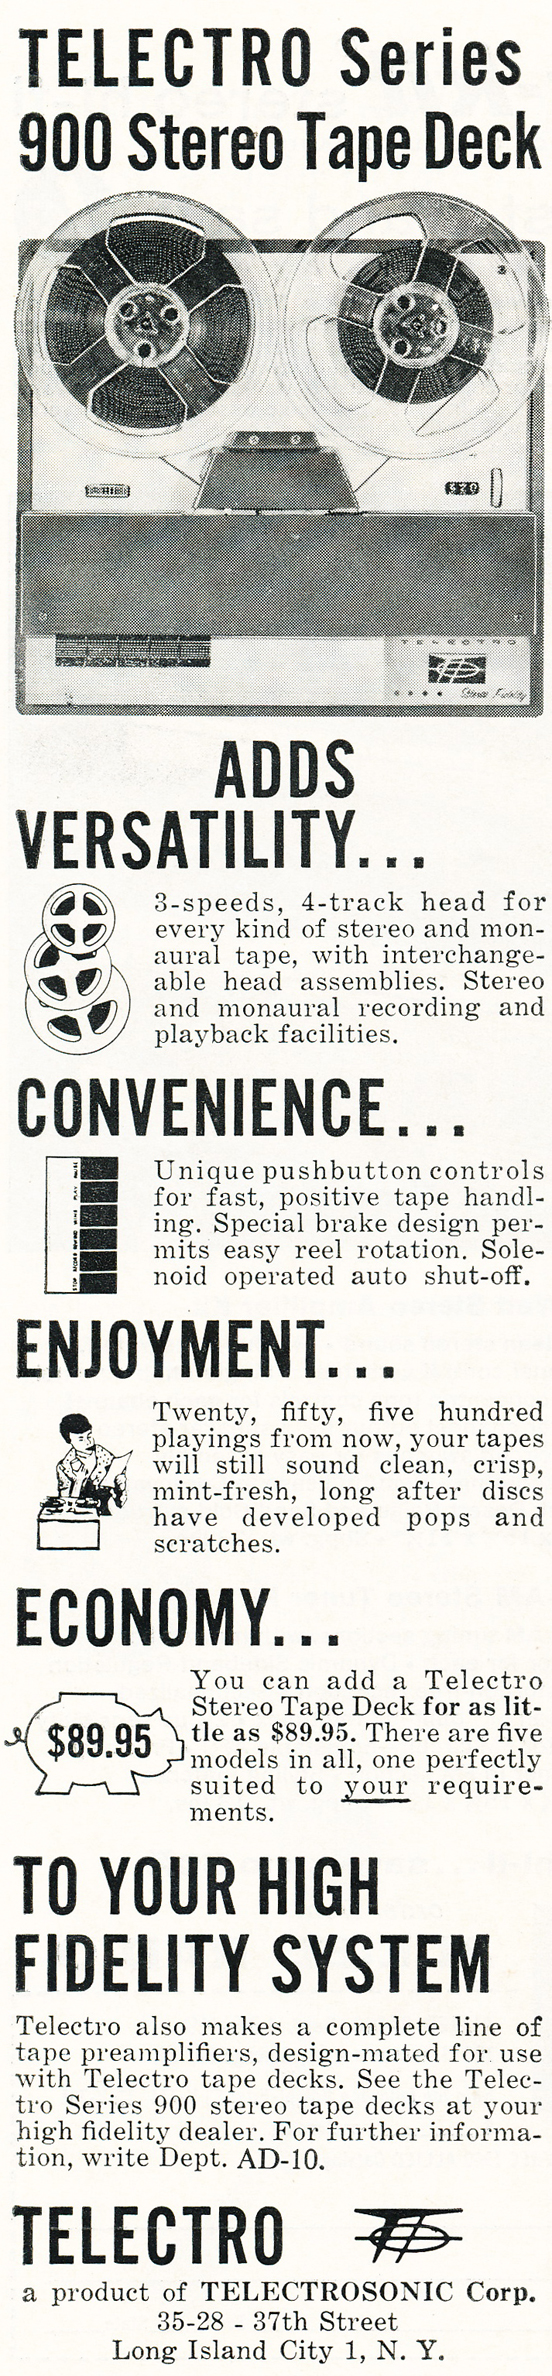 1959 ad for the Telectro reel tape recorder in Reel2ReelTexas.com's vintage recording collection